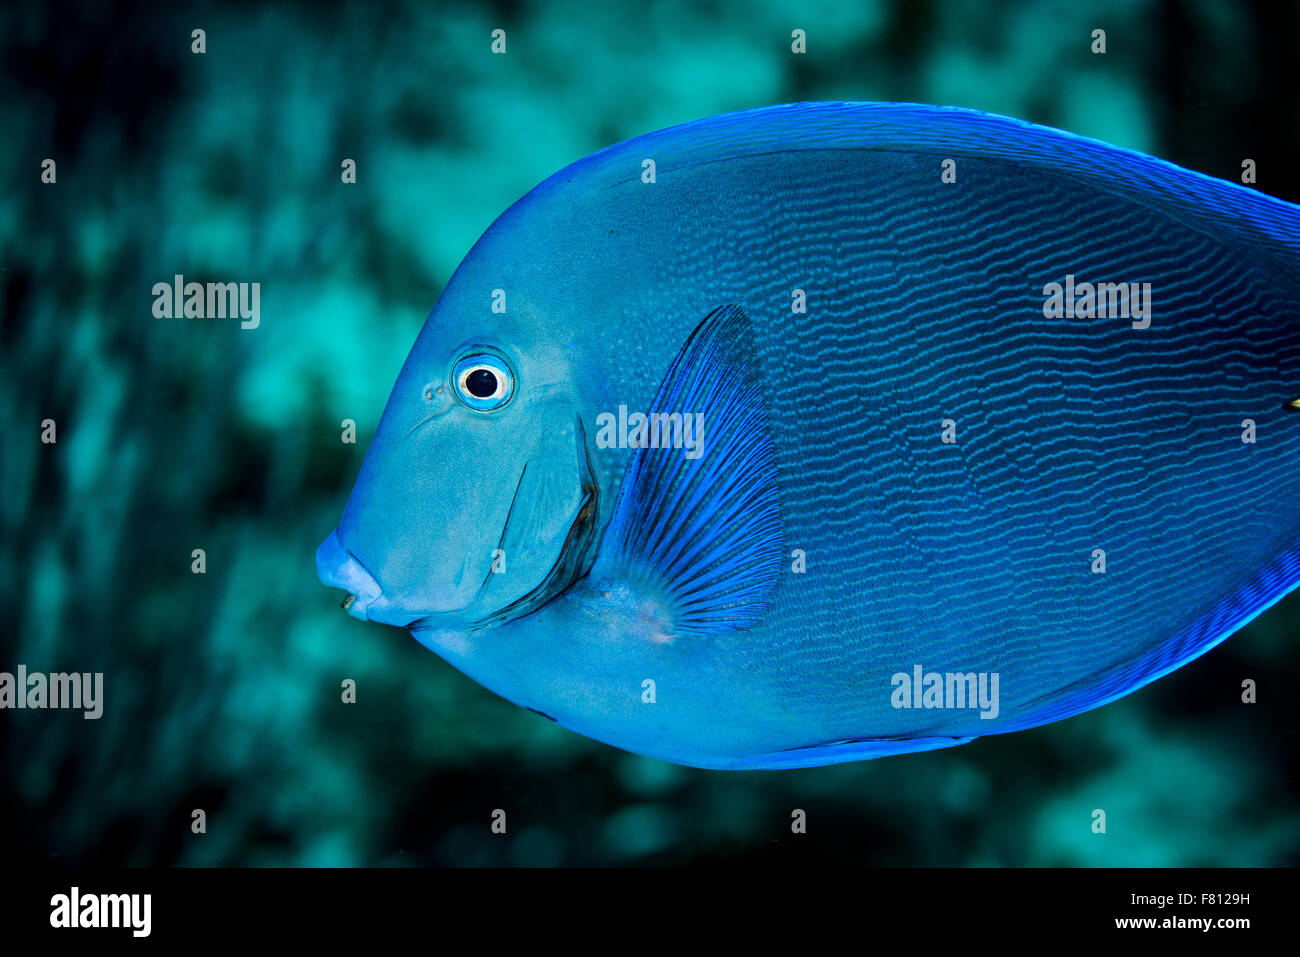 Blue tang fish underwater at Little Cayman - Stock Image